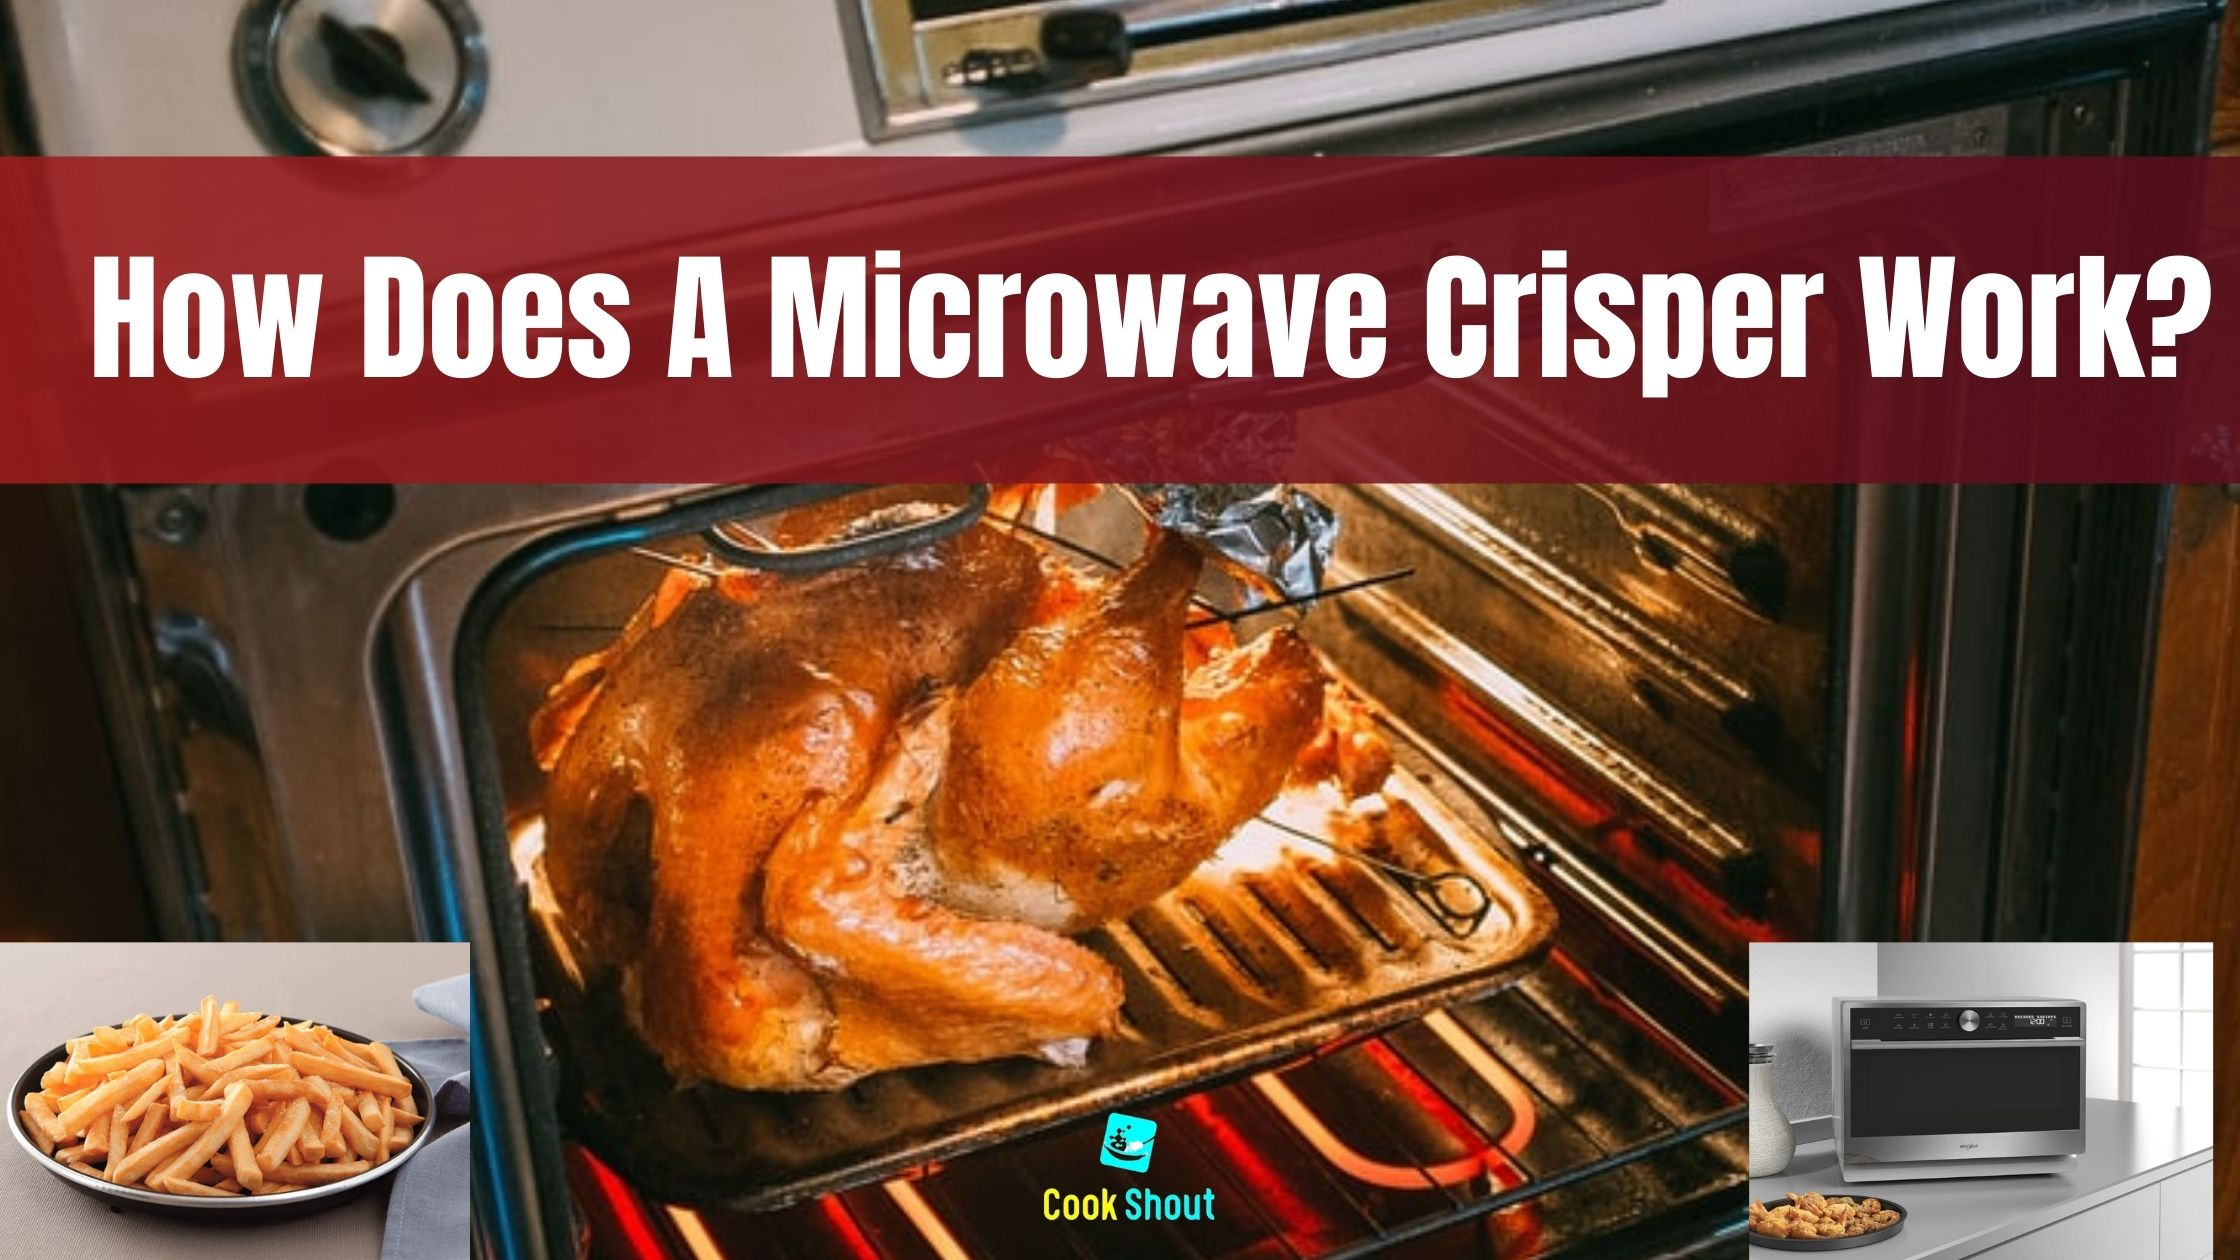 How Does A Microwave Crisper Work?